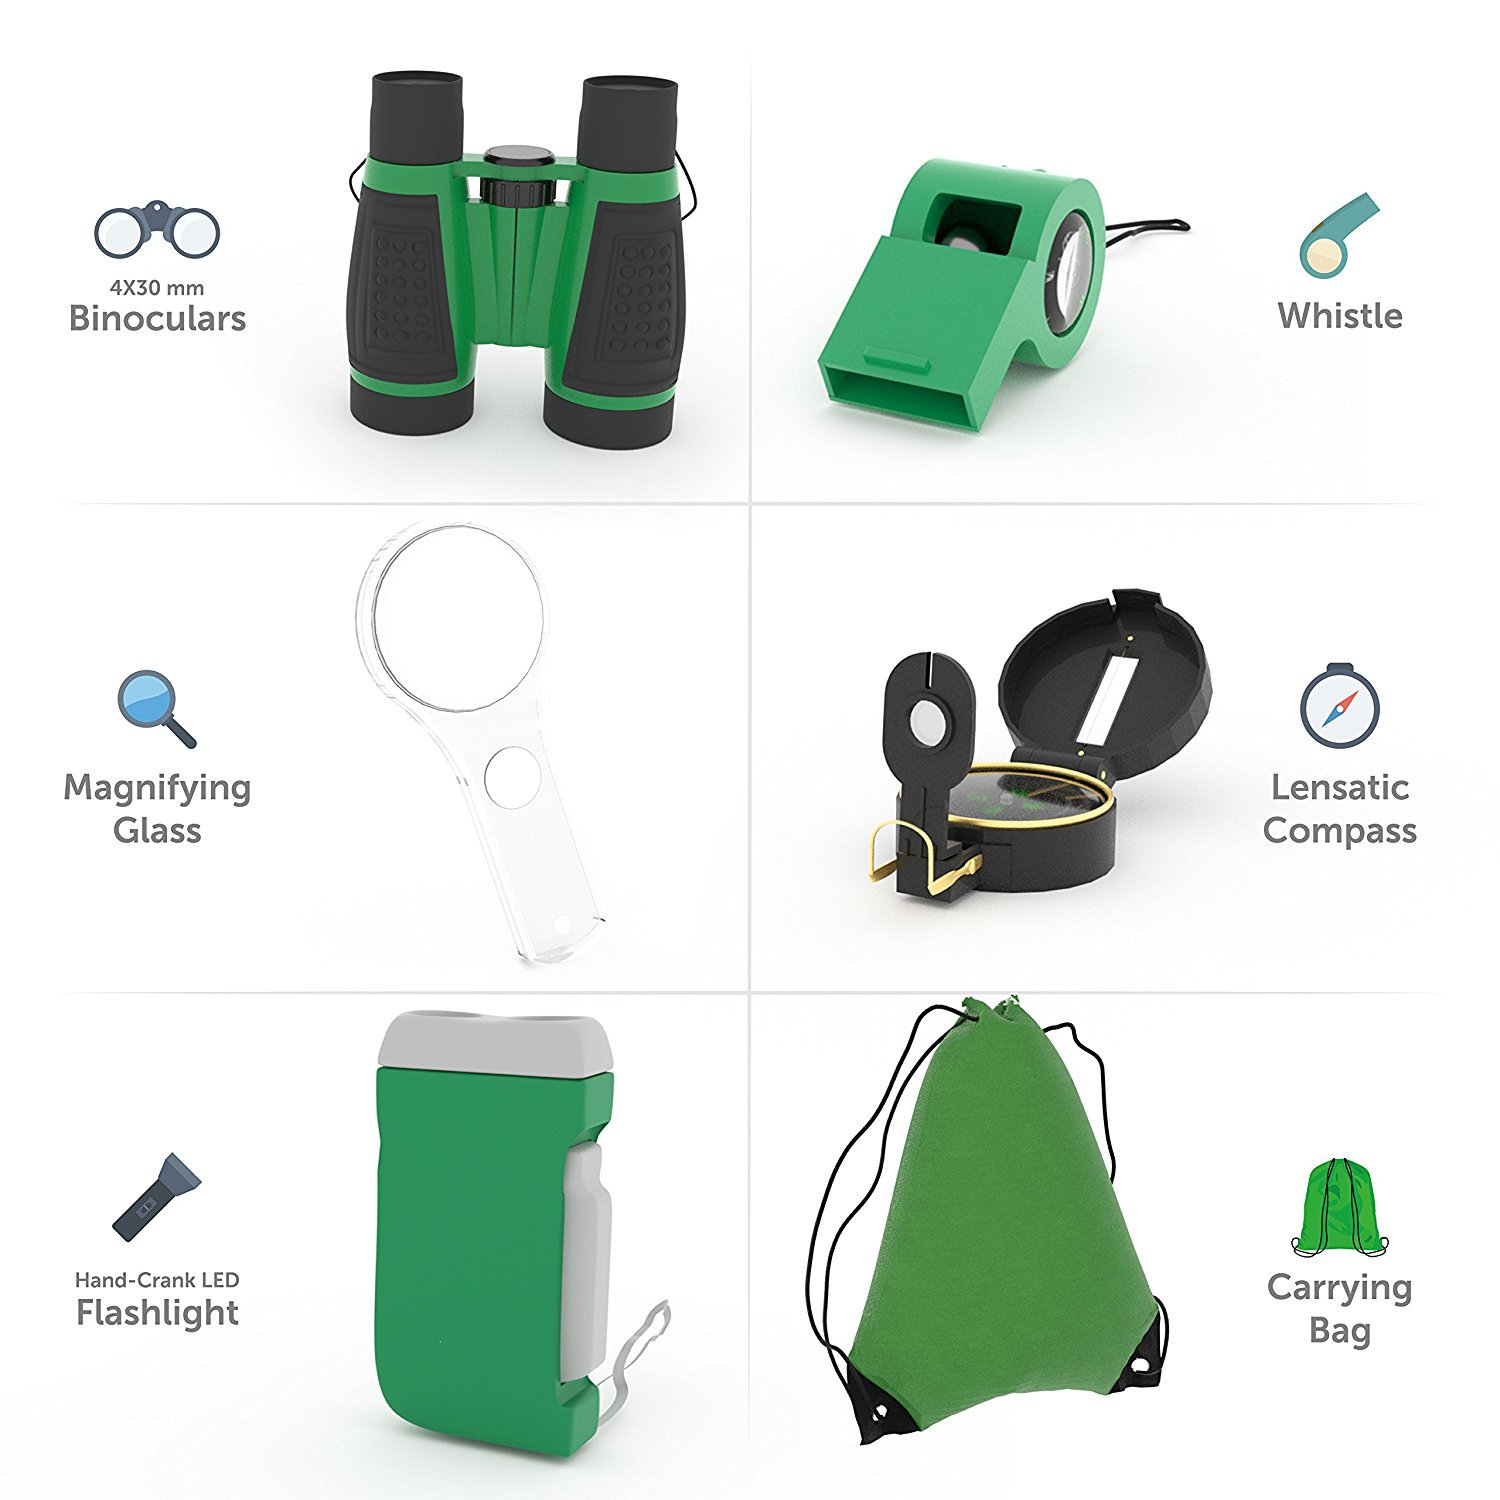 M.E.R.A. Outdoor Exploration Kit for Young Kids, 6-in-1 Set includes: Binoculars, Magnifying Glass, Whistle, Hand-Crank Flashlight, Lensatic Compass, Backpack, Great Educational Gift Set for Camping,